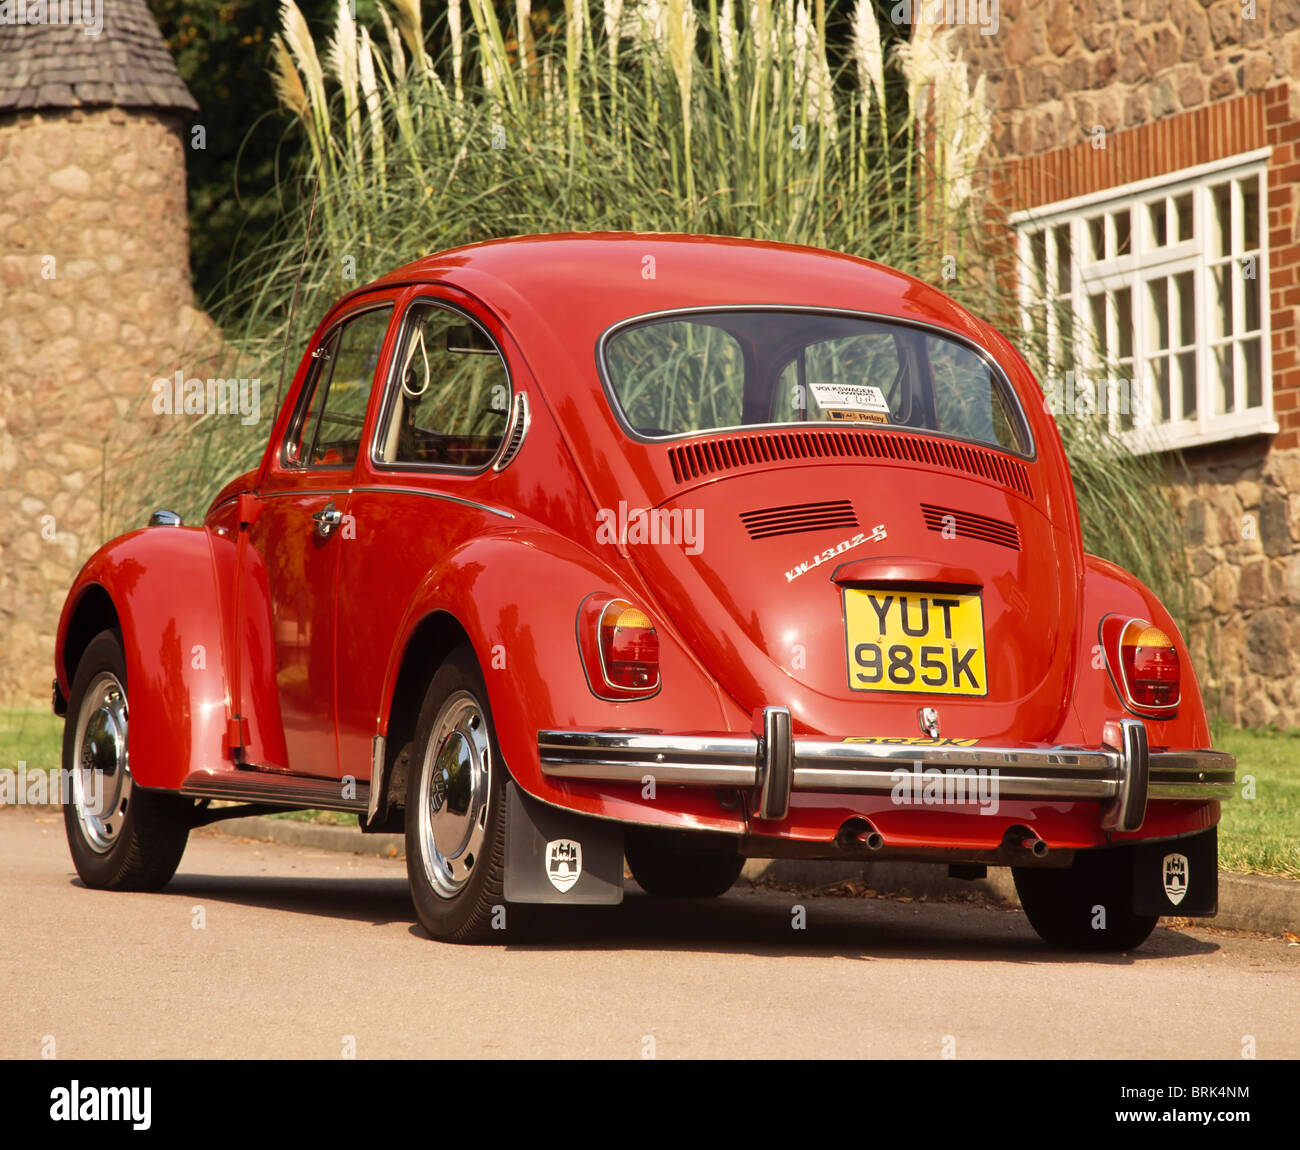 1990 Volkswagen Beetle: Car Vw 1300 Beetle Stock Photos & Car Vw 1300 Beetle Stock